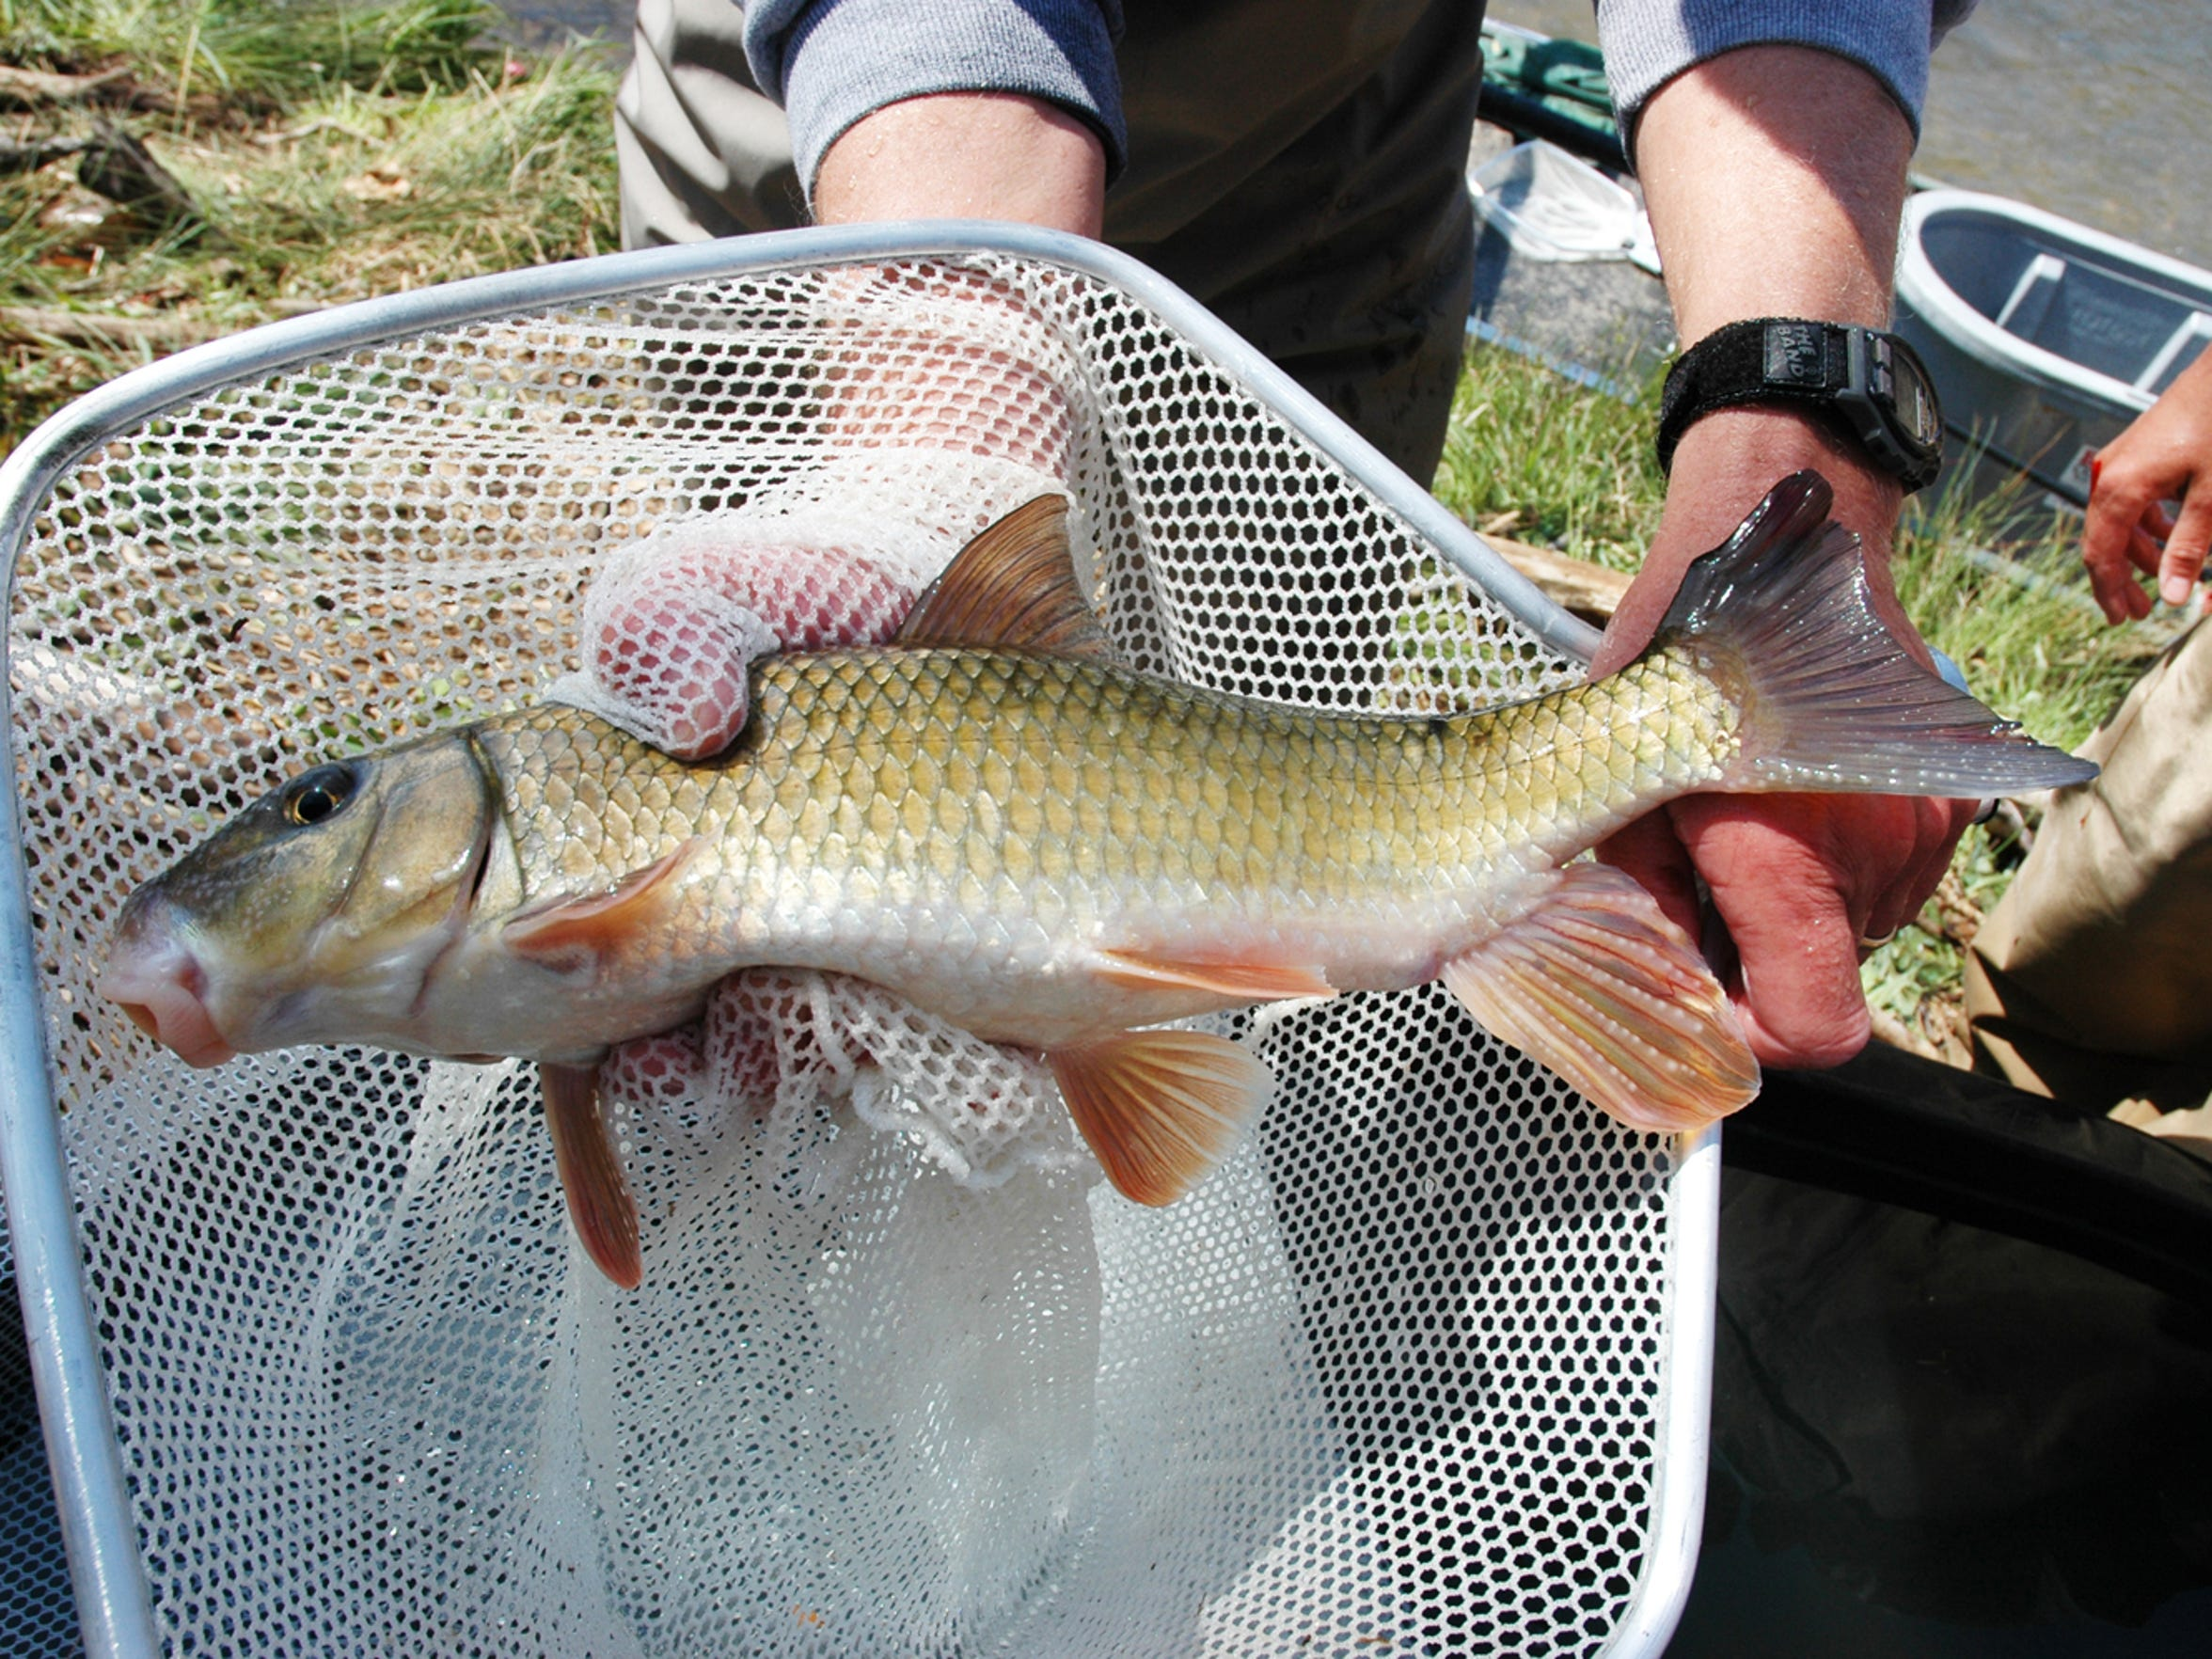 A sicklefin redhorse caught in a net in the Little Tennessee River. The rare fish is a candidate for the Endangered Species List.